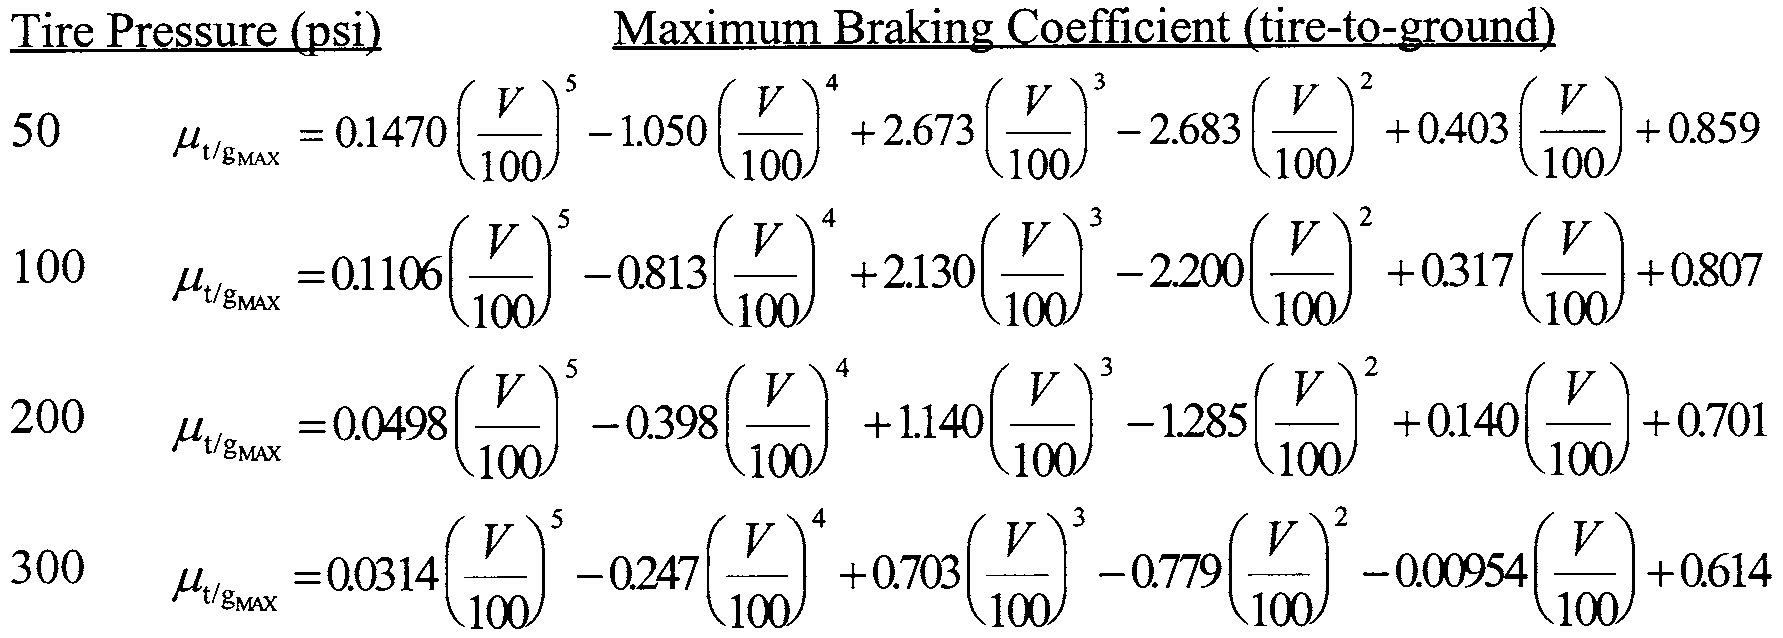 Graphic of (2) The wet runway braking coefficient defined in paragraph (c) of this section, except that a specific anti-skid system efficiency, if determined, is appropriate for a grooved or porous friction course wet runway, and the maximum tire-to-ground wet runway braking coefficient of friction is defined as